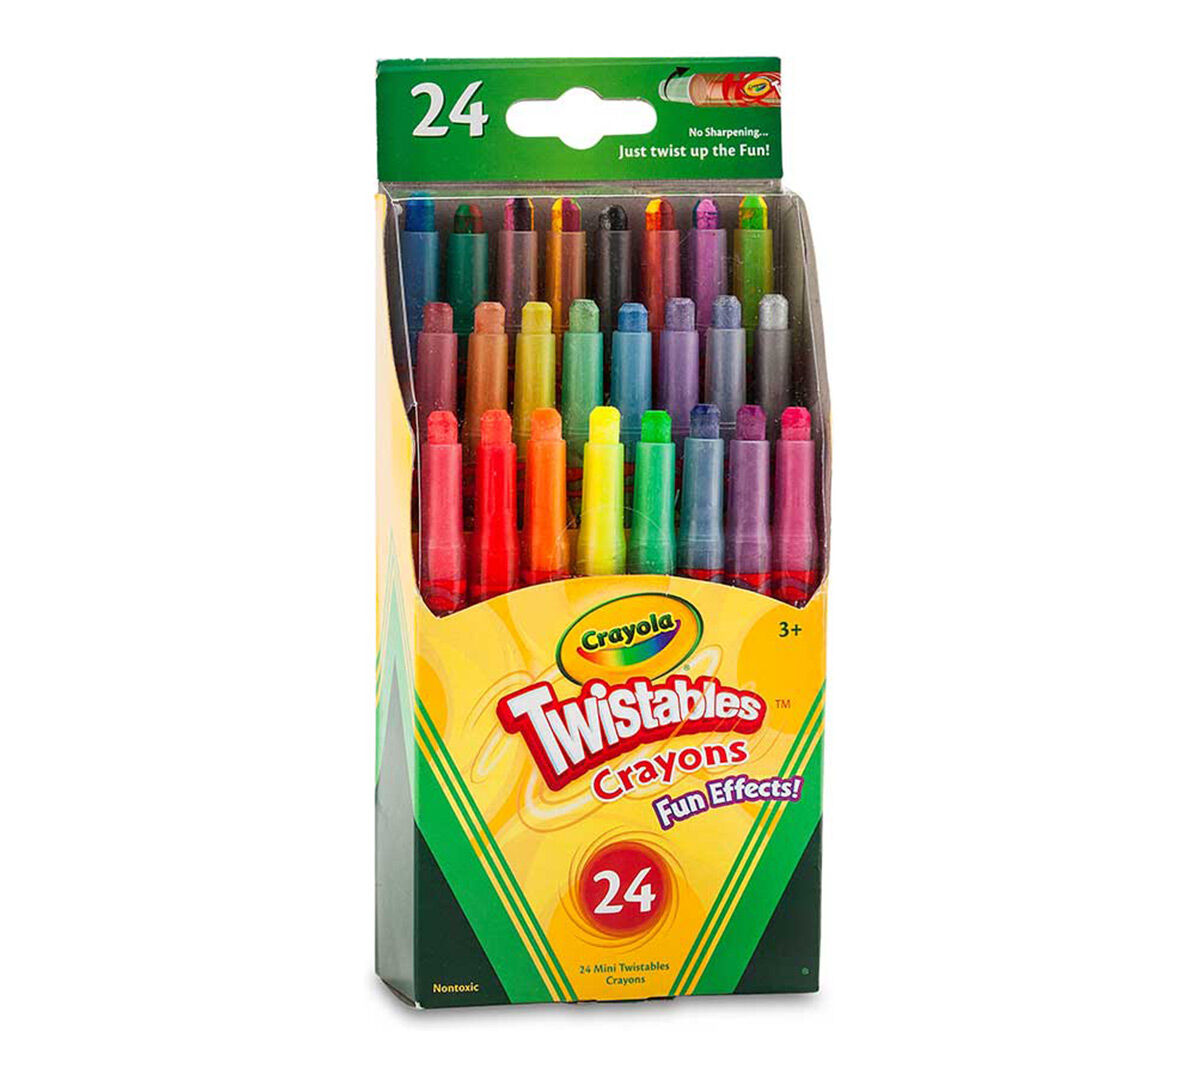 crayola fun effects mini twistables crayons 24ct gift for kids